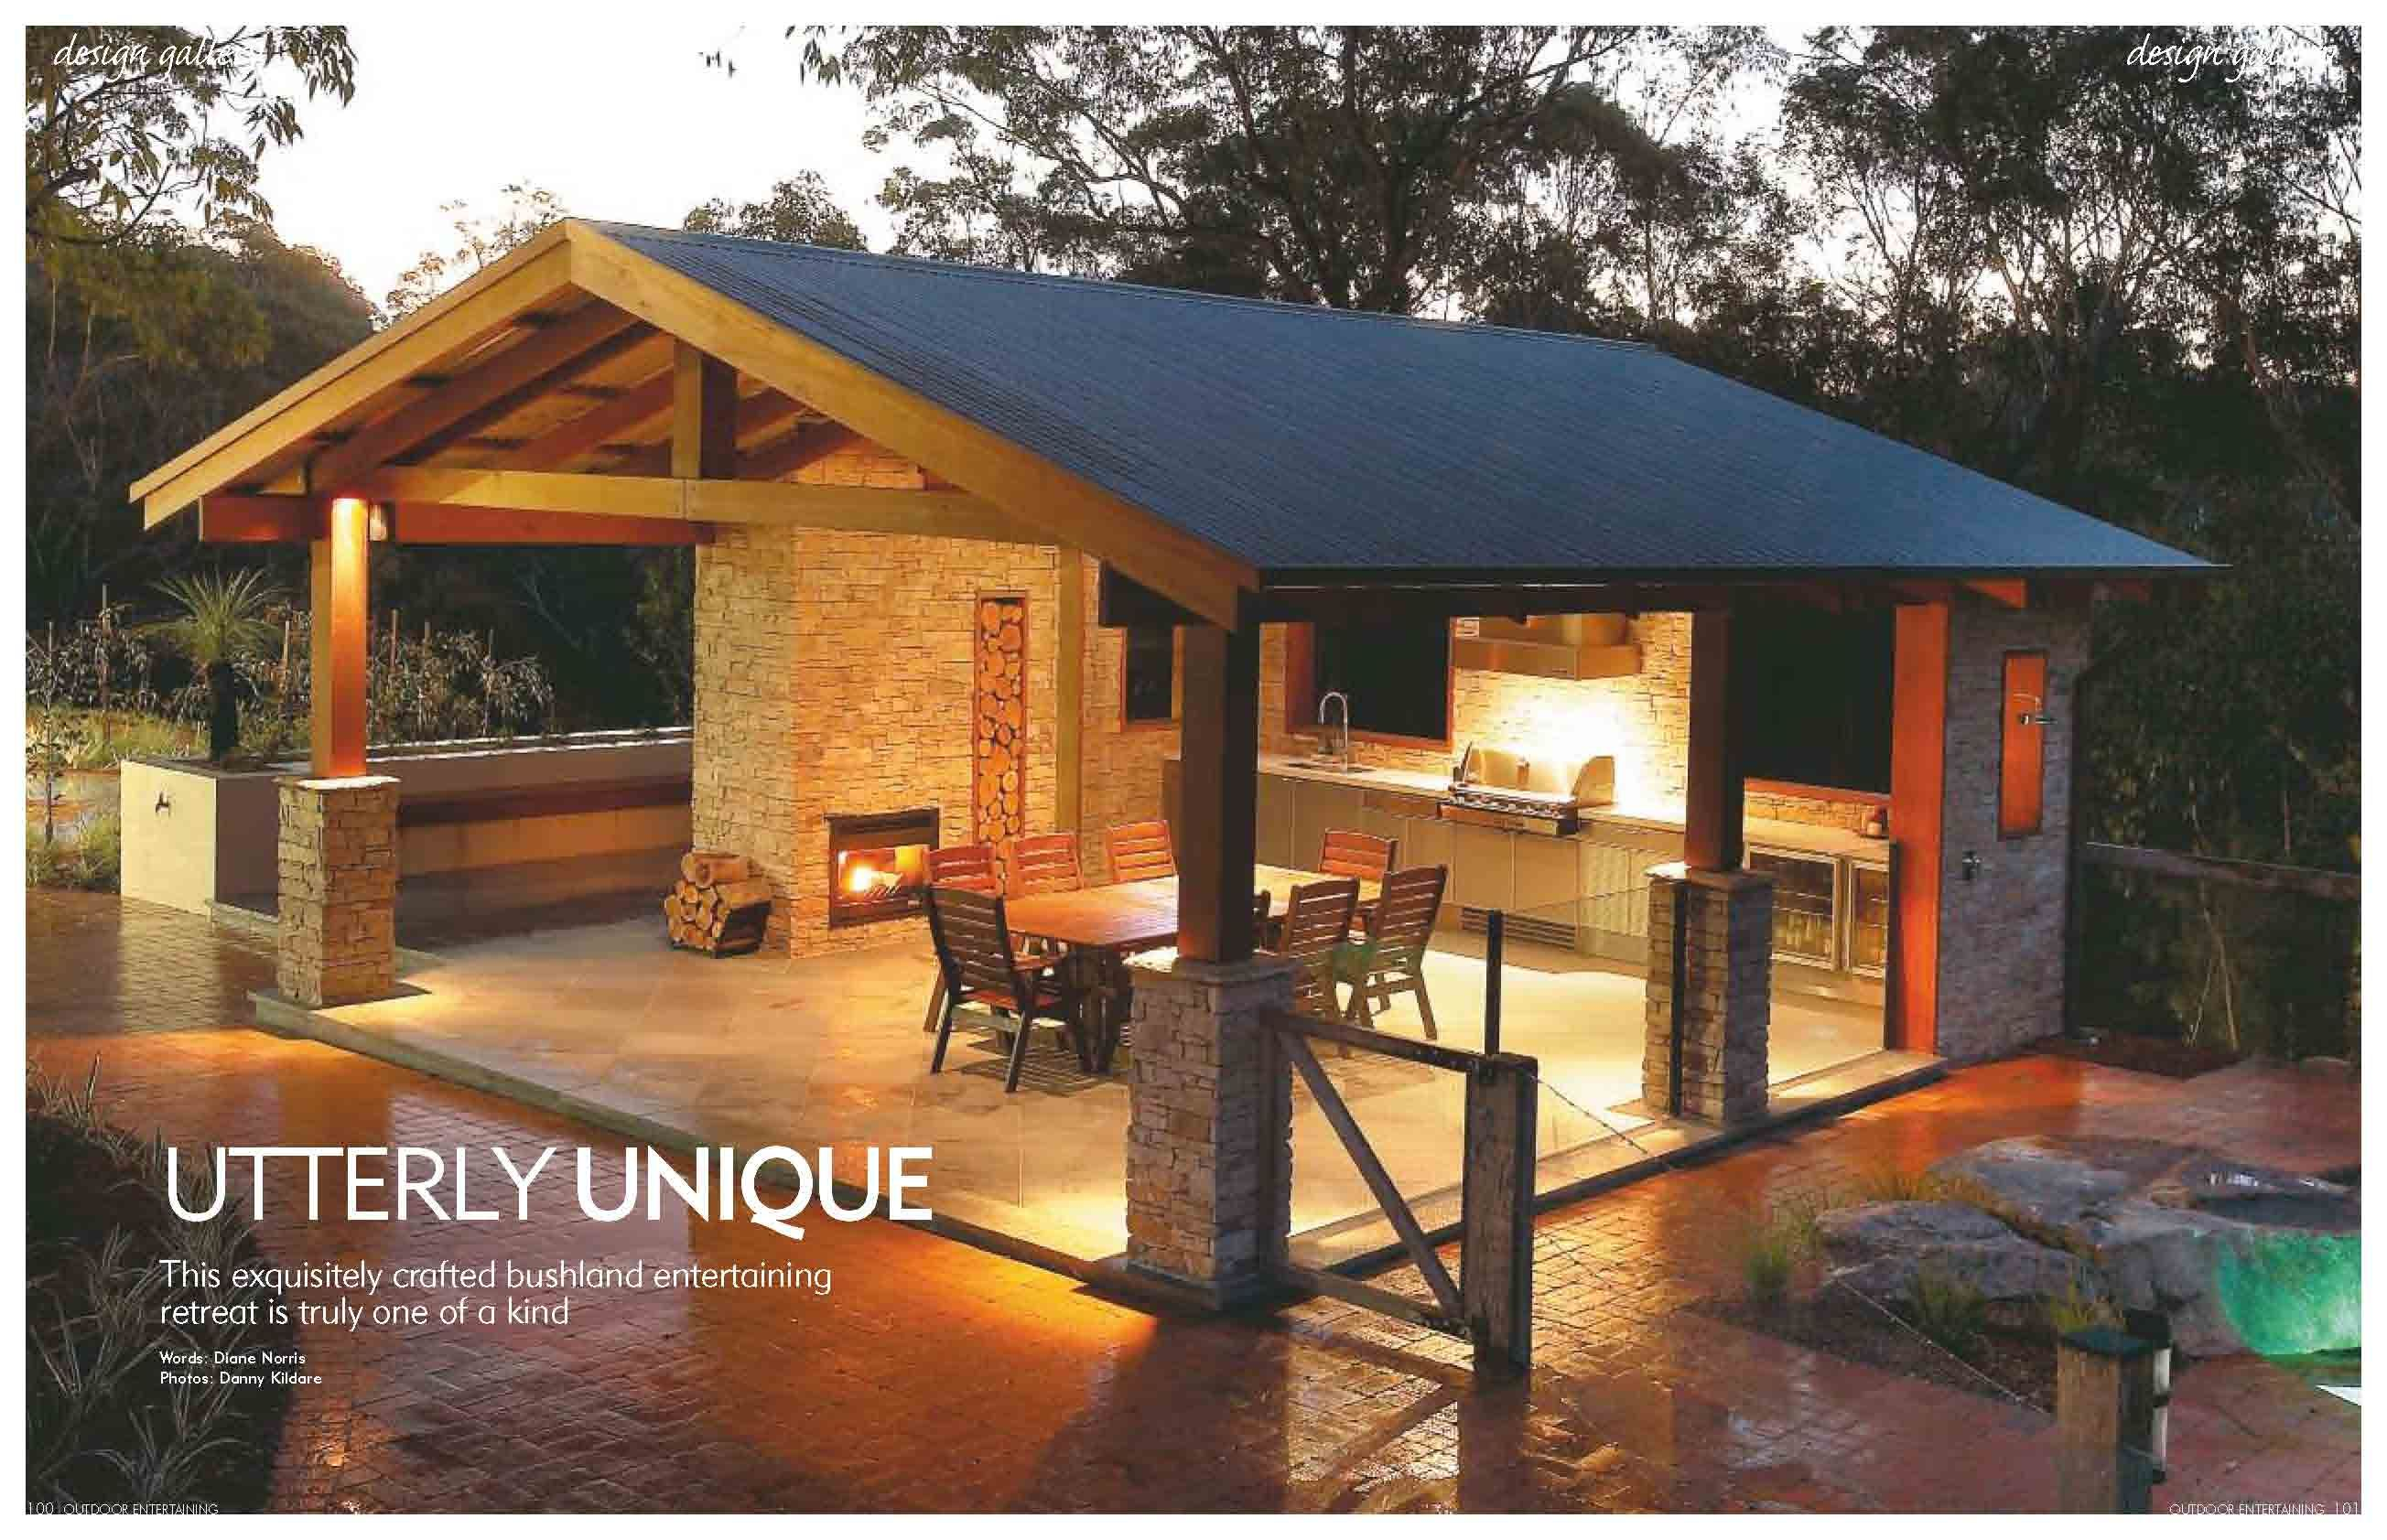 Pin By Troy Sporer On Outdoors Outdoor Remodel Outdoor Kitchen Design Layout Outdoor Kitchen Design